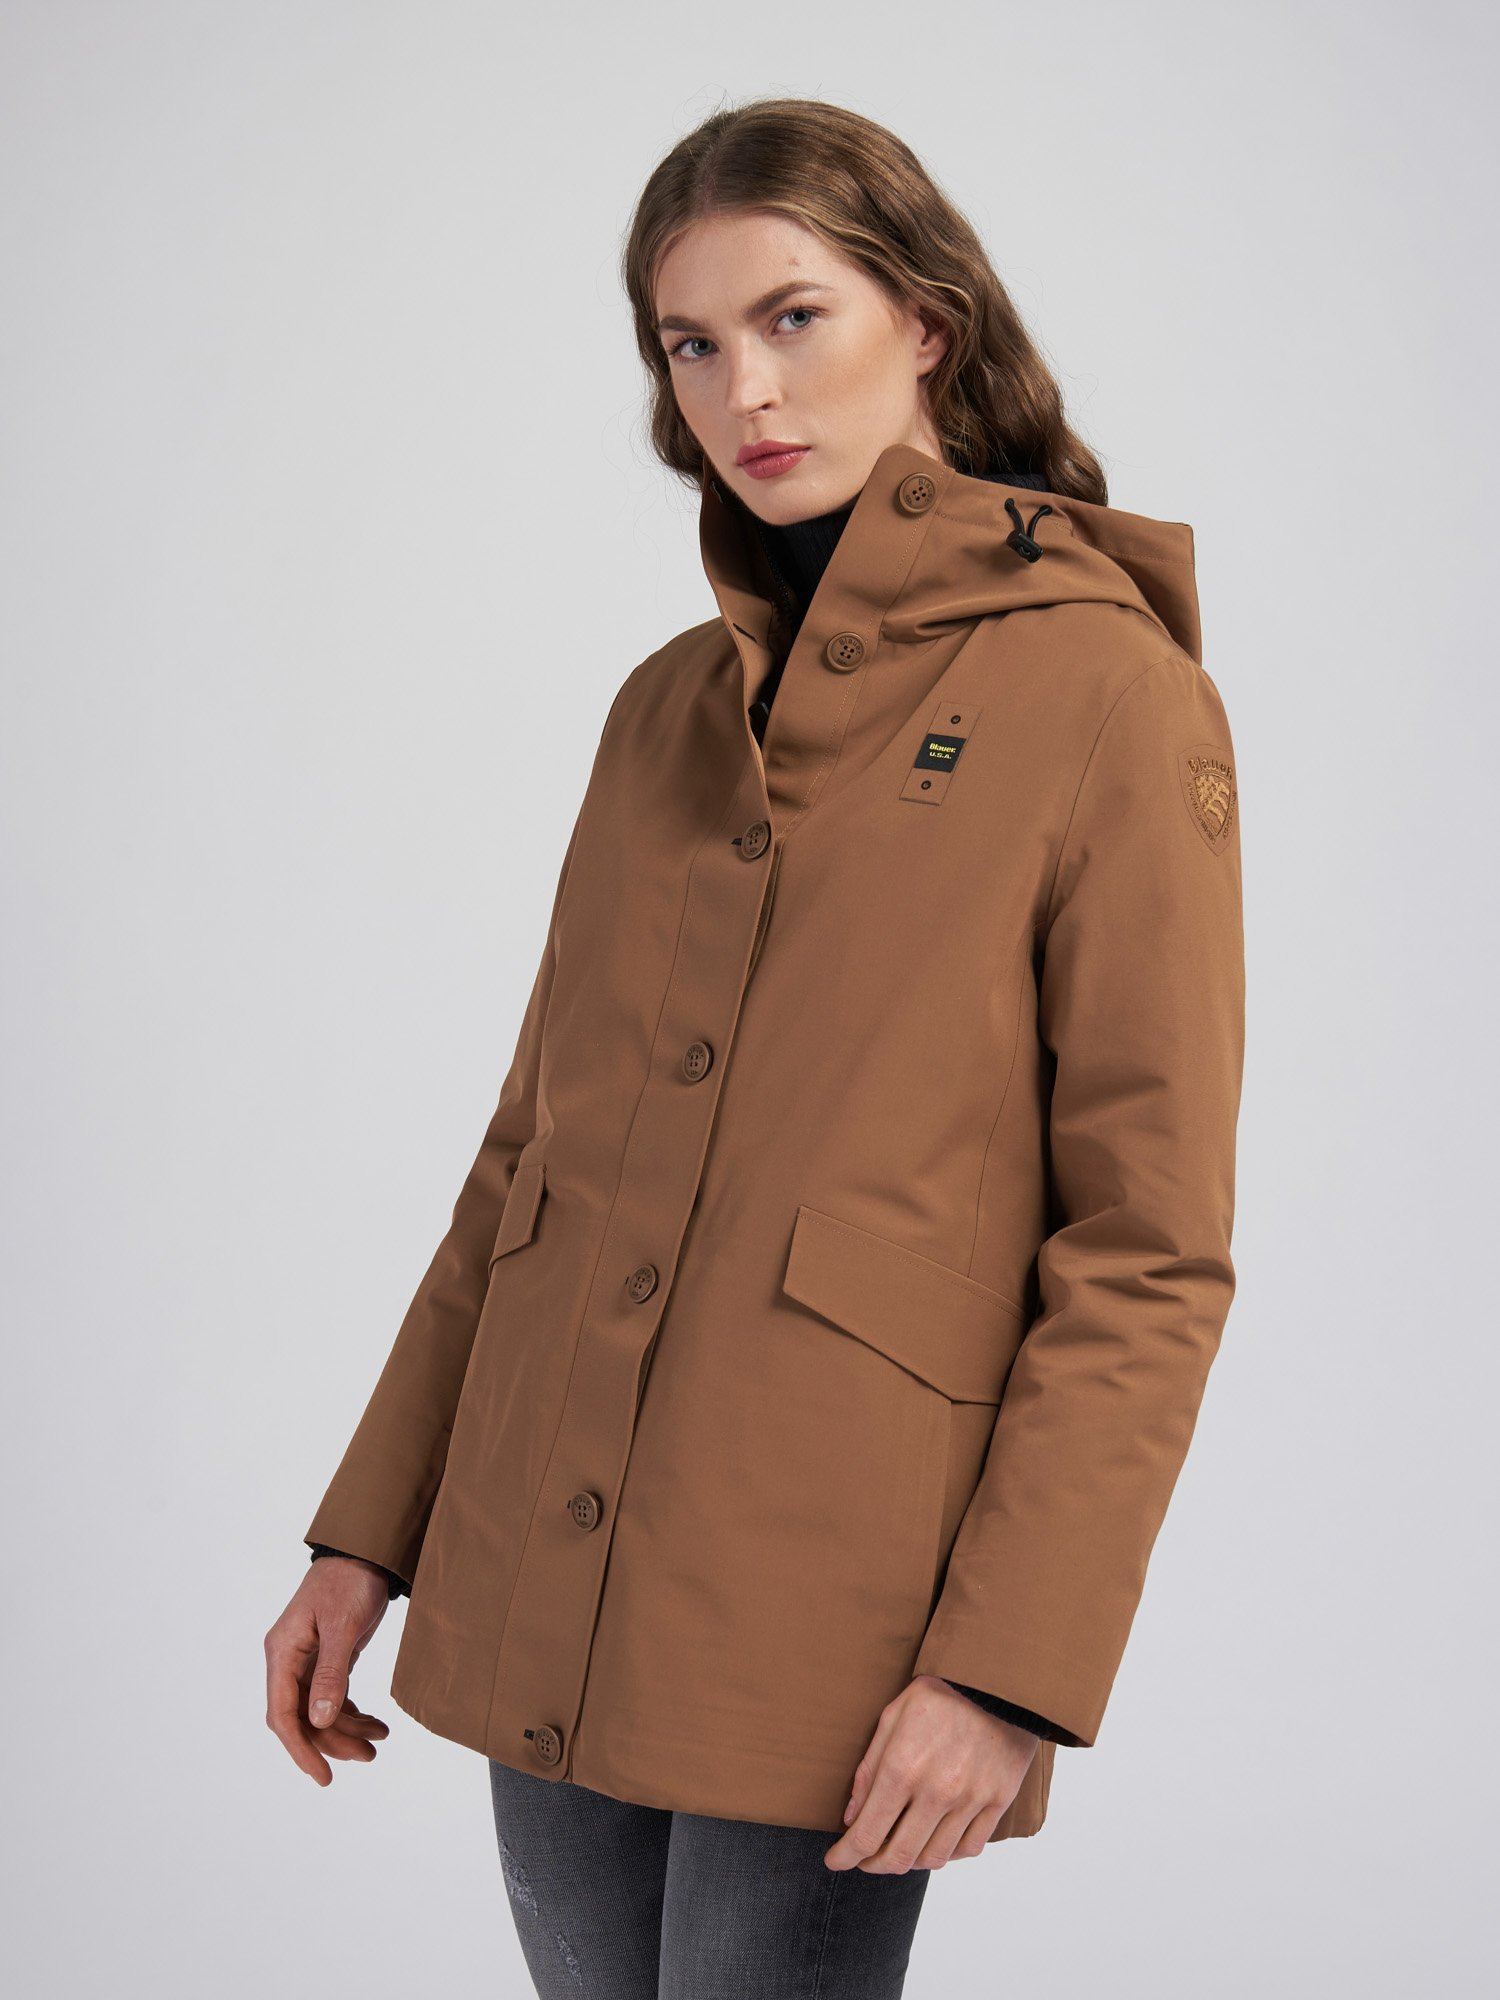 CAROLYN JACKET WITH DETACHABLE LINING - Blauer